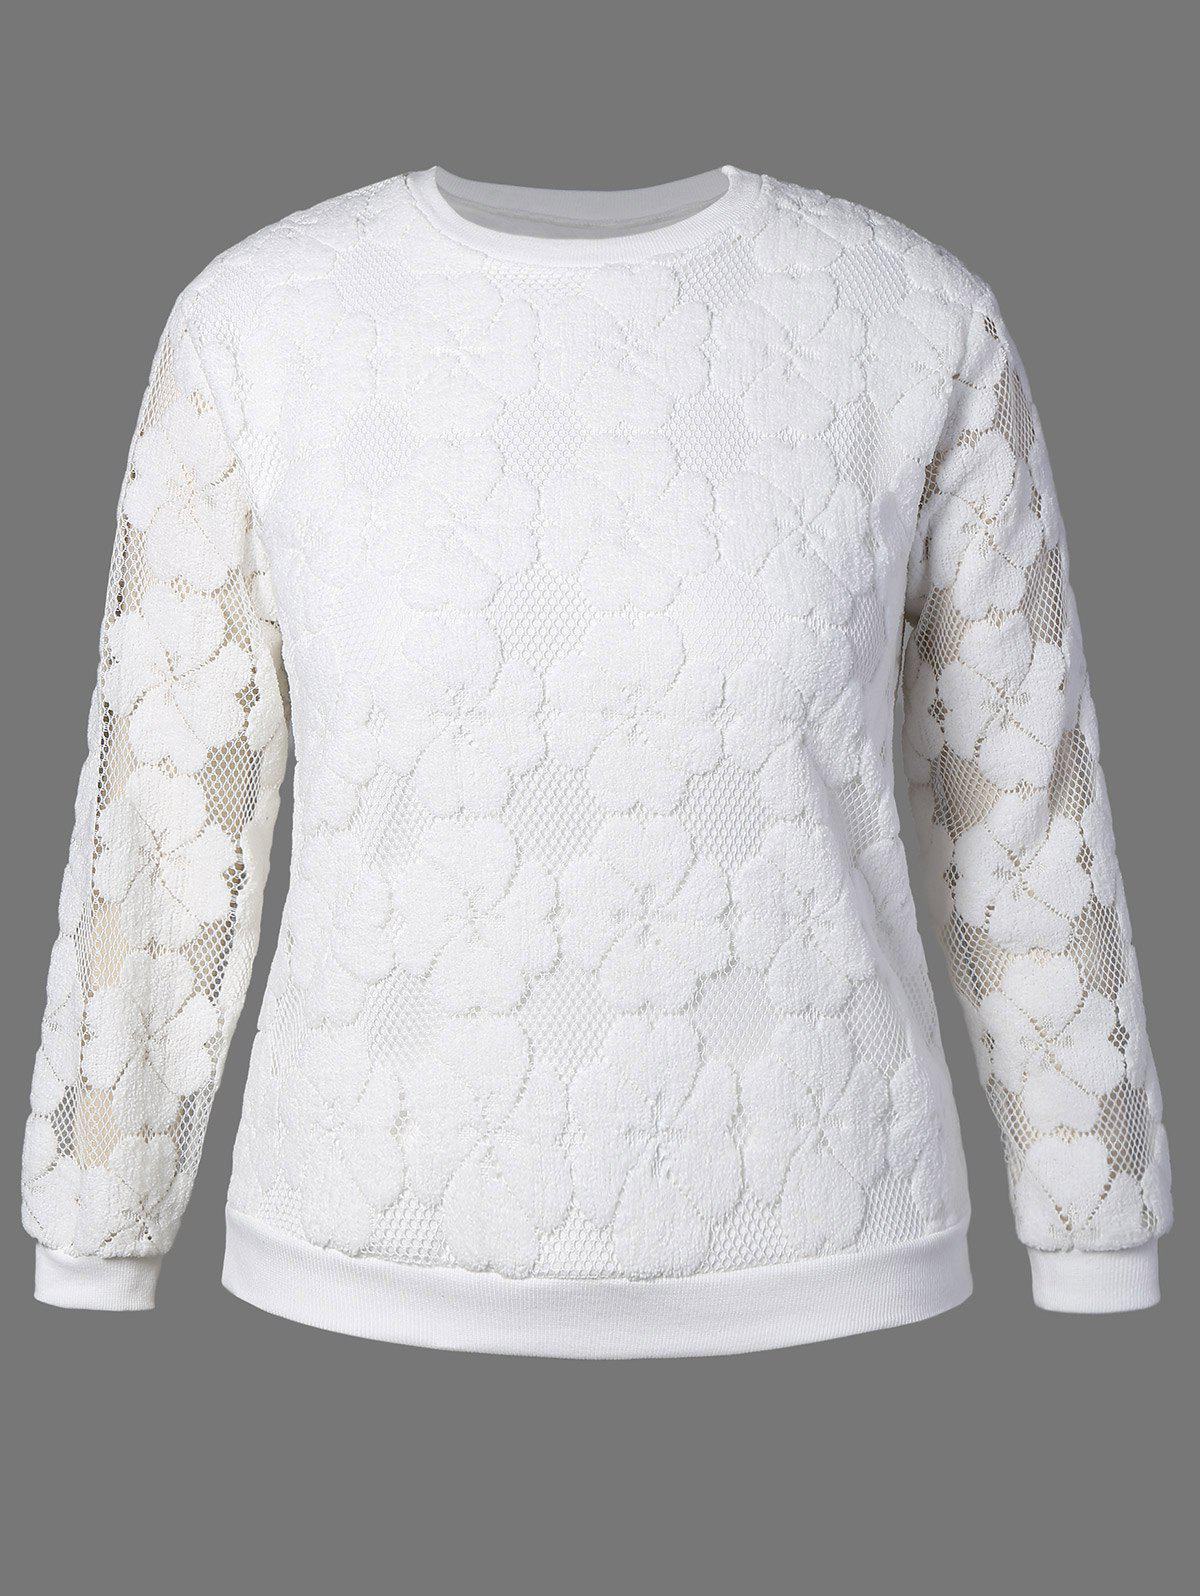 Plus Size Flower Embroidered Lace Sweatshirt - WHITE 3XL